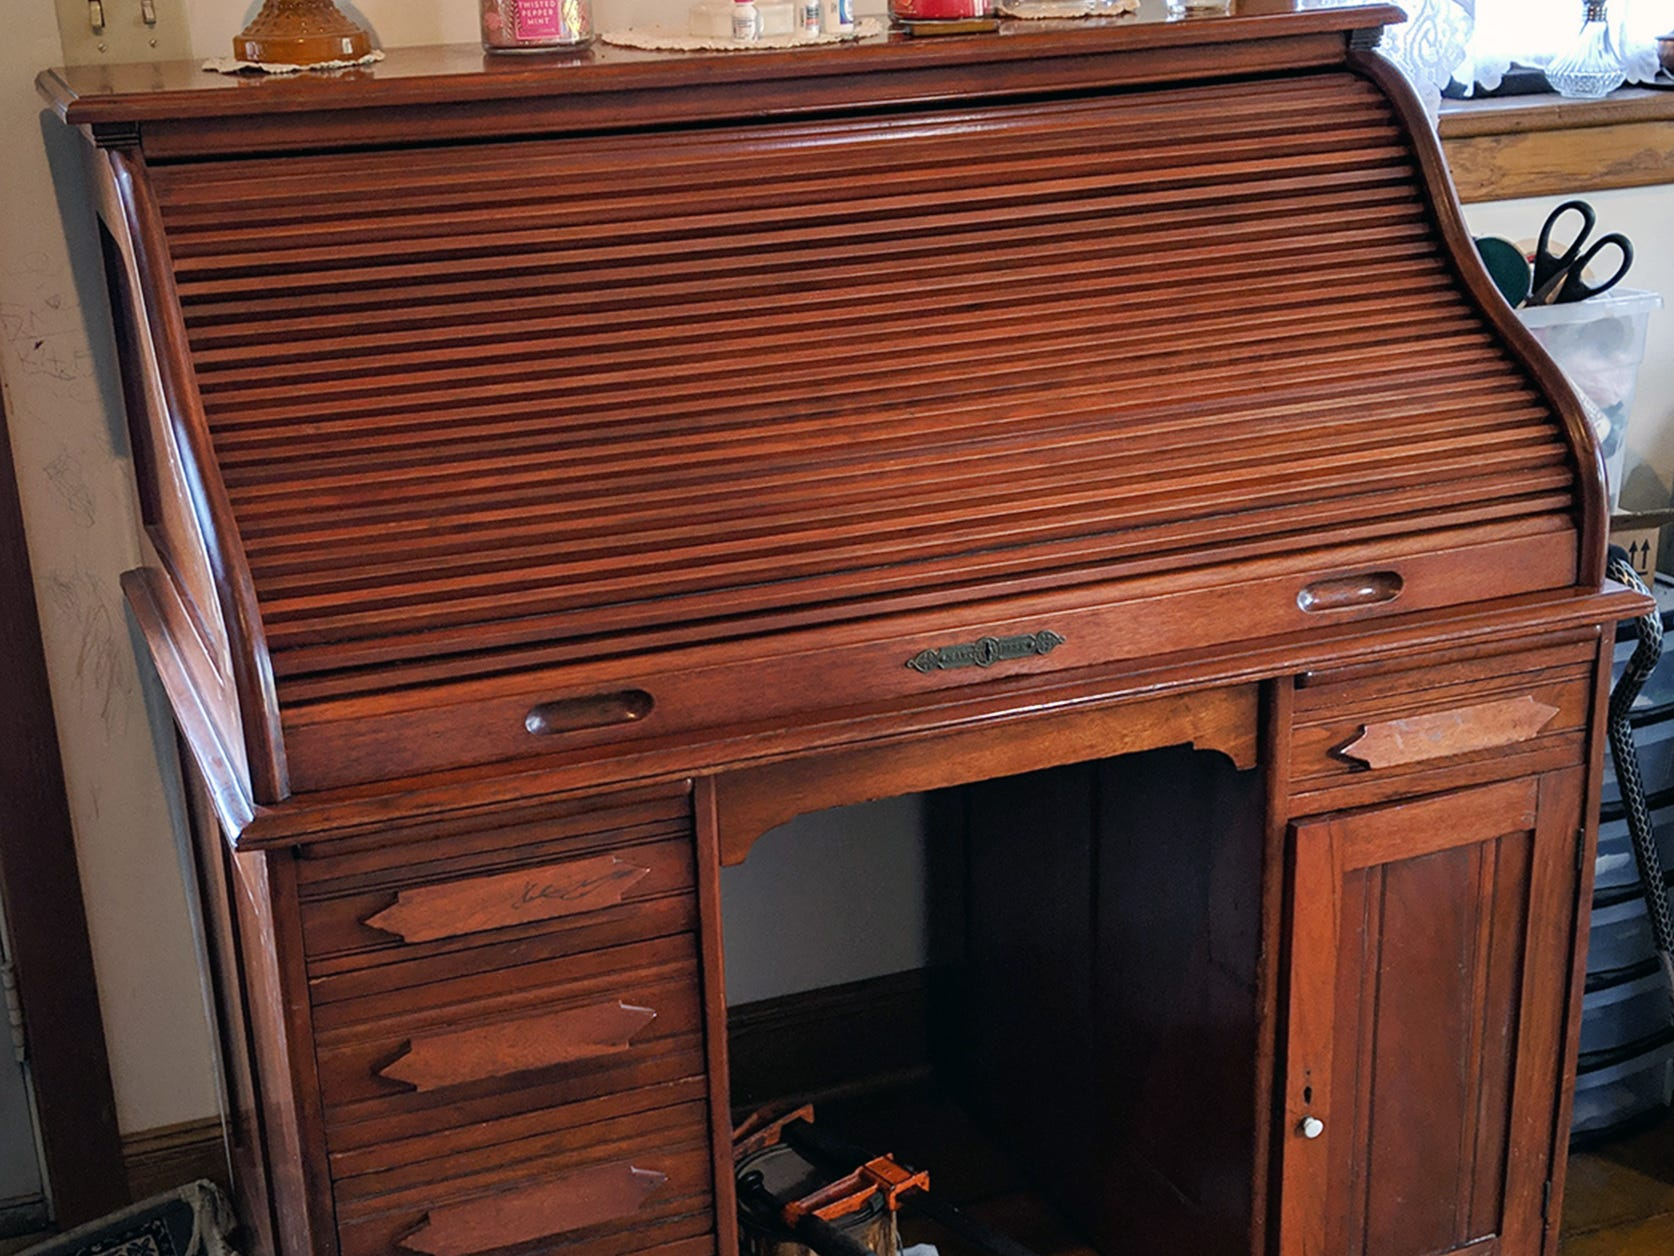 John McHenry's desk is all waxed and ready to return back to Millersville this January.